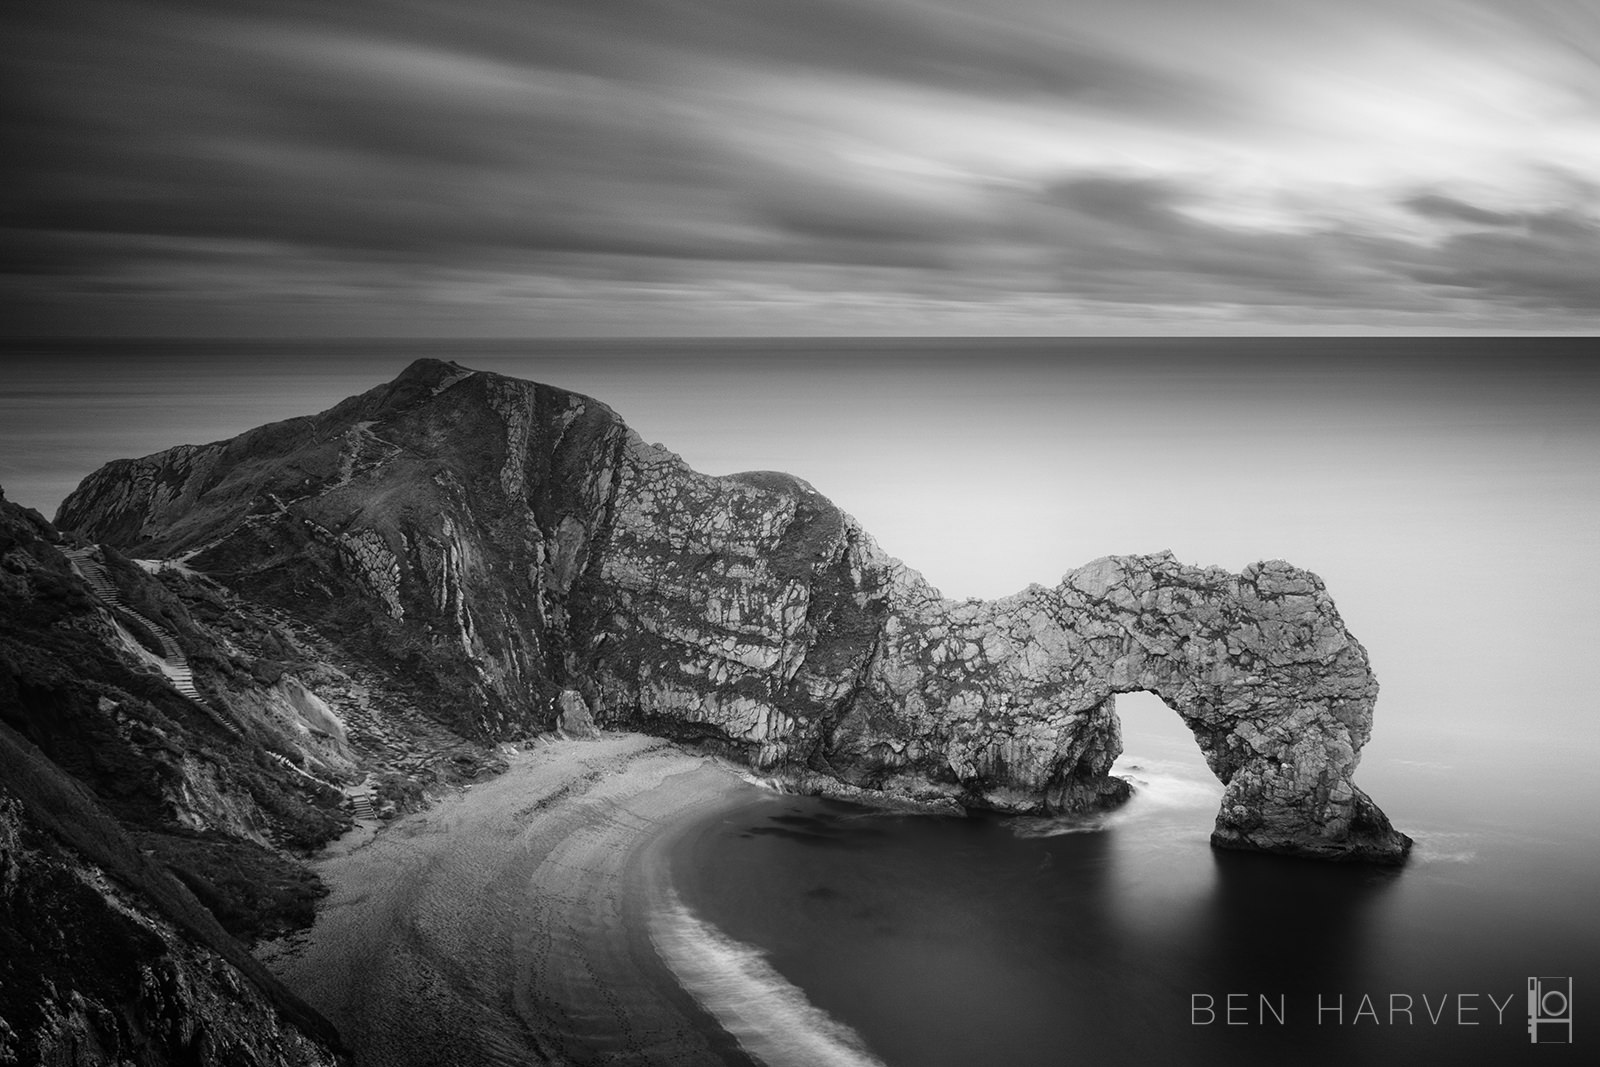 Filters allow me to create photos that are minutes long - here a 4 minute exposure of Durdle door